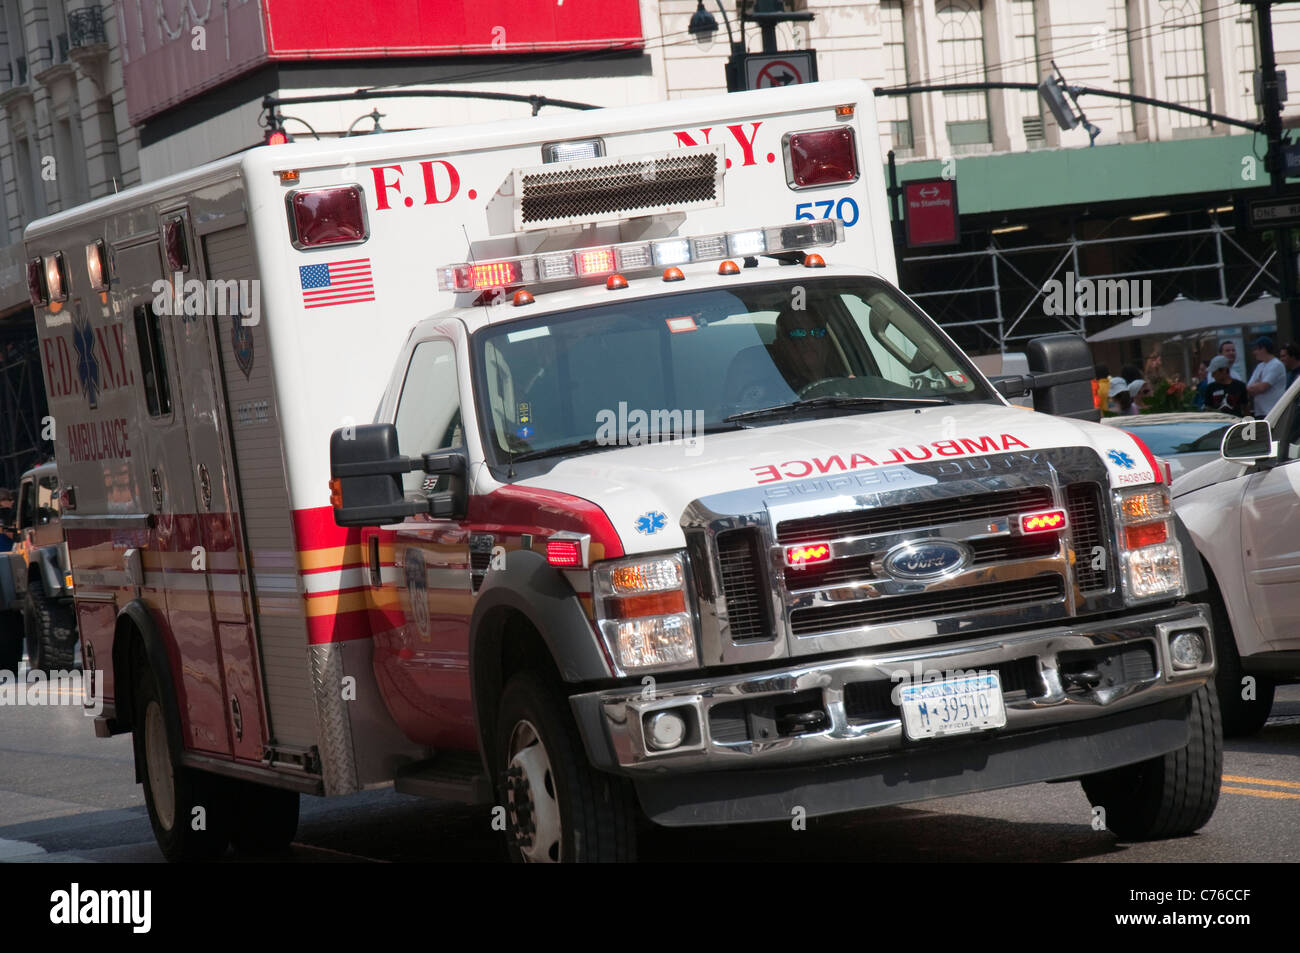 An ambulance on 34th St in New York, USA - Stock Image